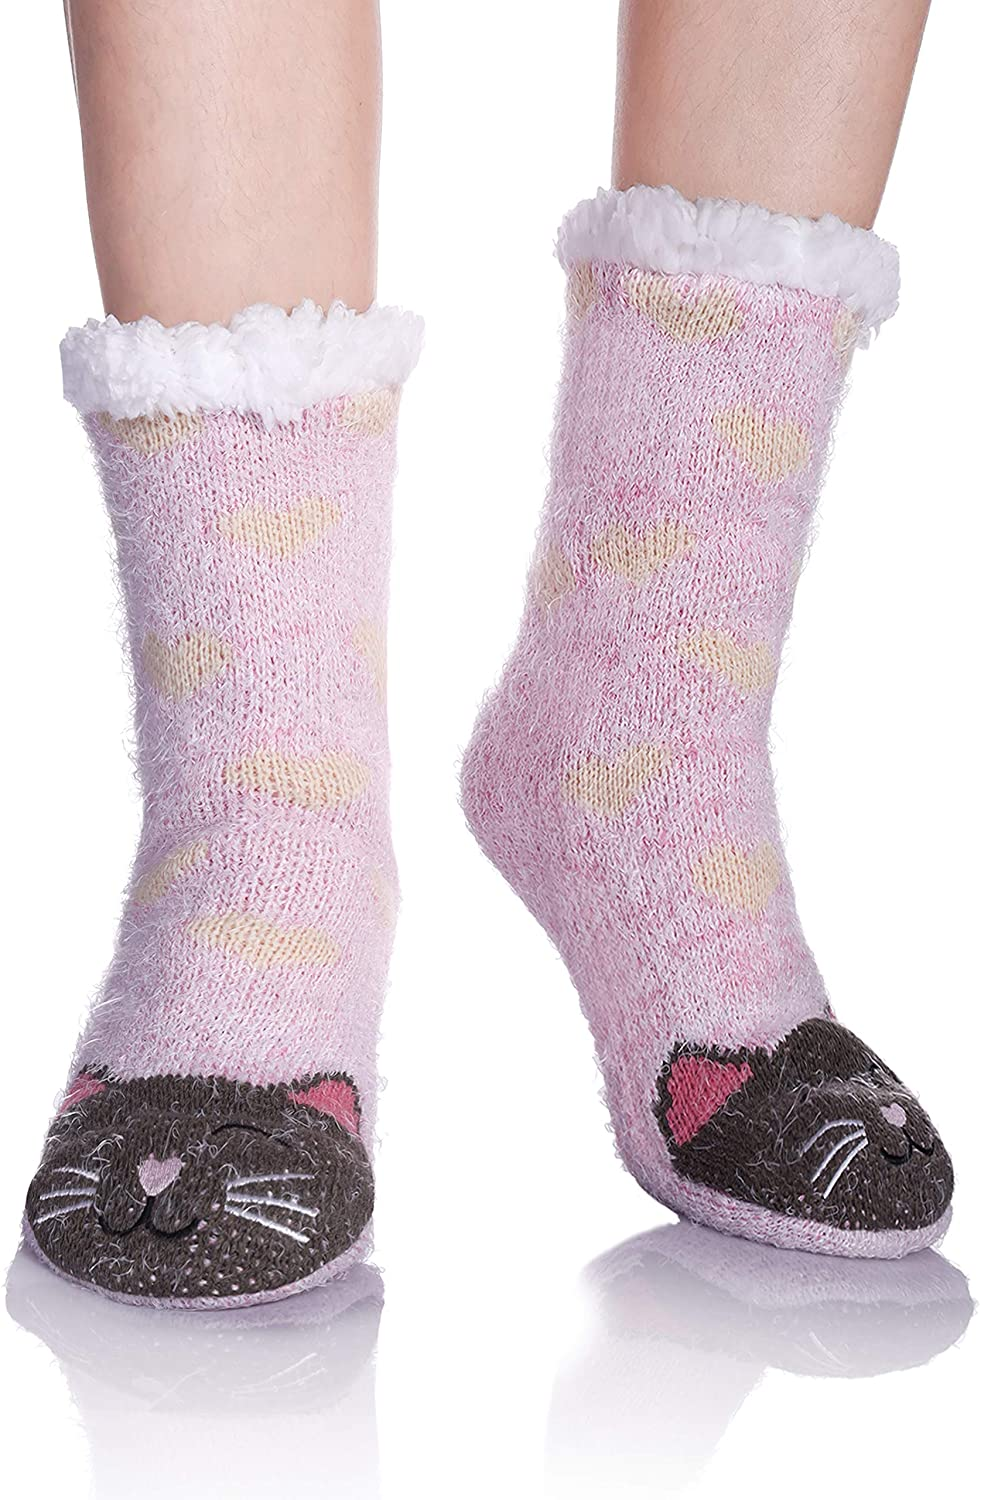 DOSKONI Womens Girls Fuzzy Slipper Socks Super Soft Fluffy Faux Fur Cute Animal Thick Fleece Lined Winter Socks with Grippers